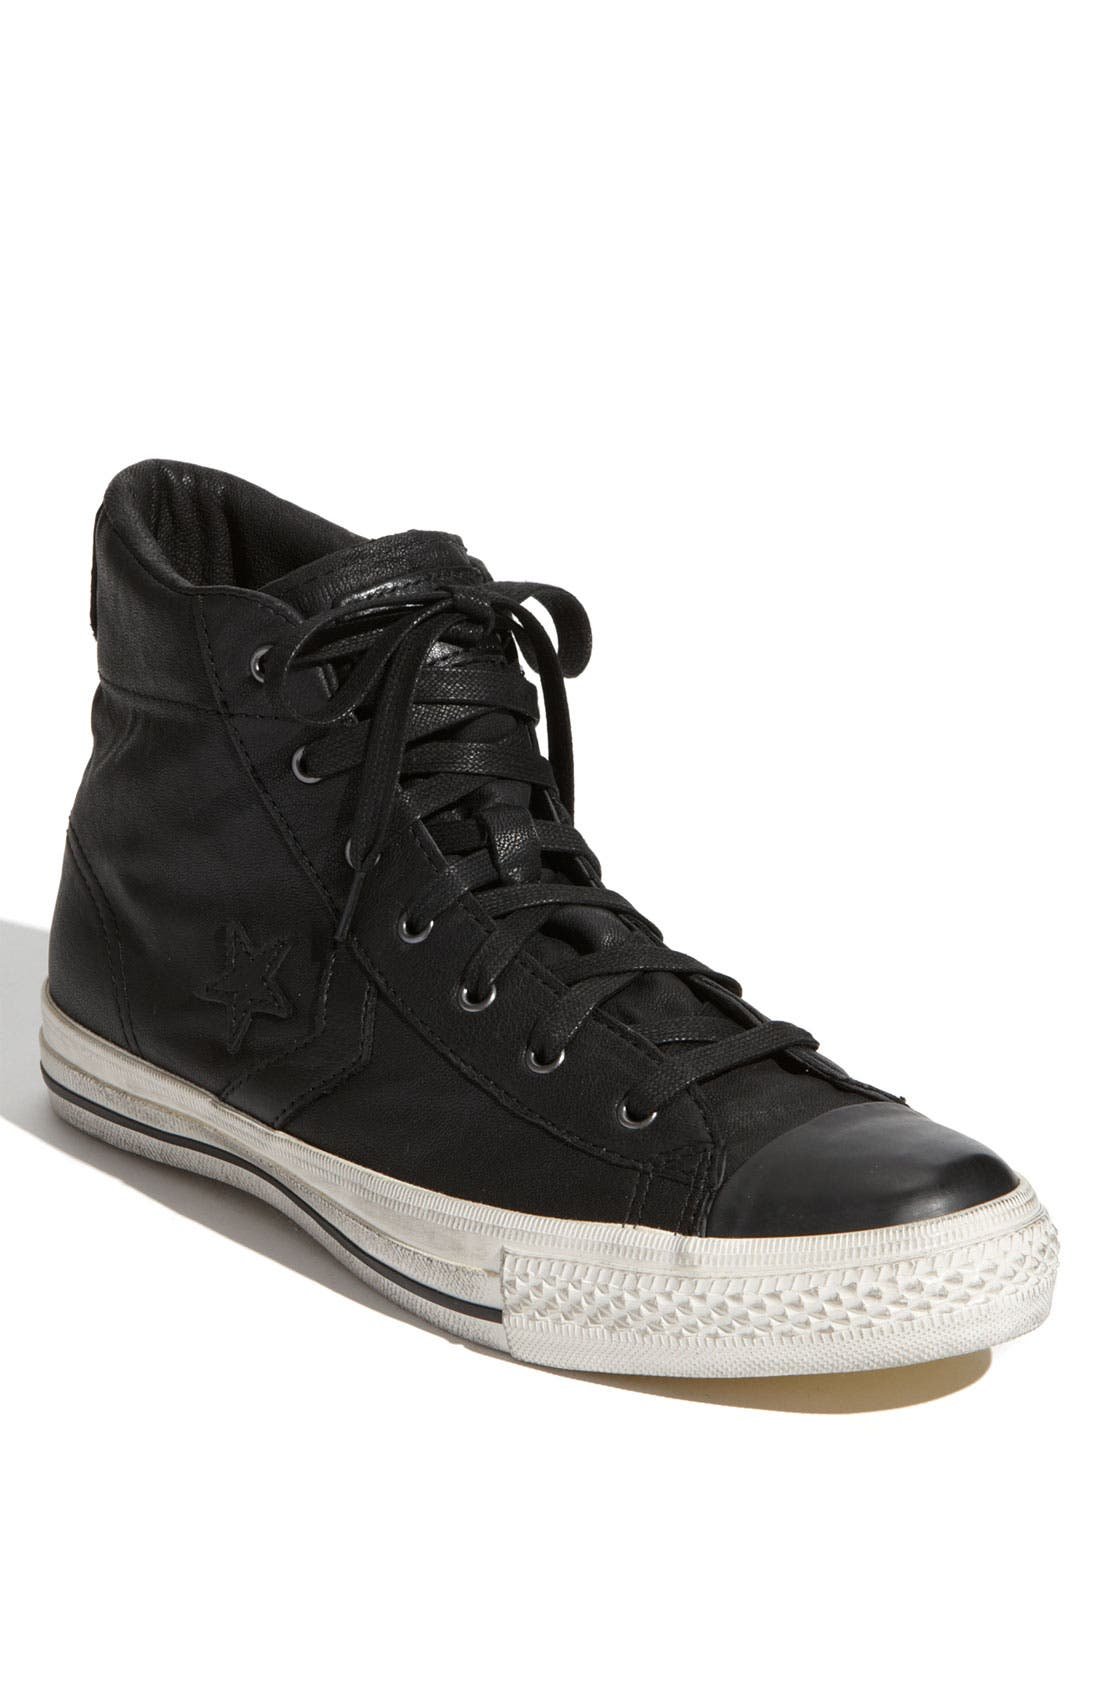 'Star Player Mid' Sneaker,                             Main thumbnail 1, color,                             001